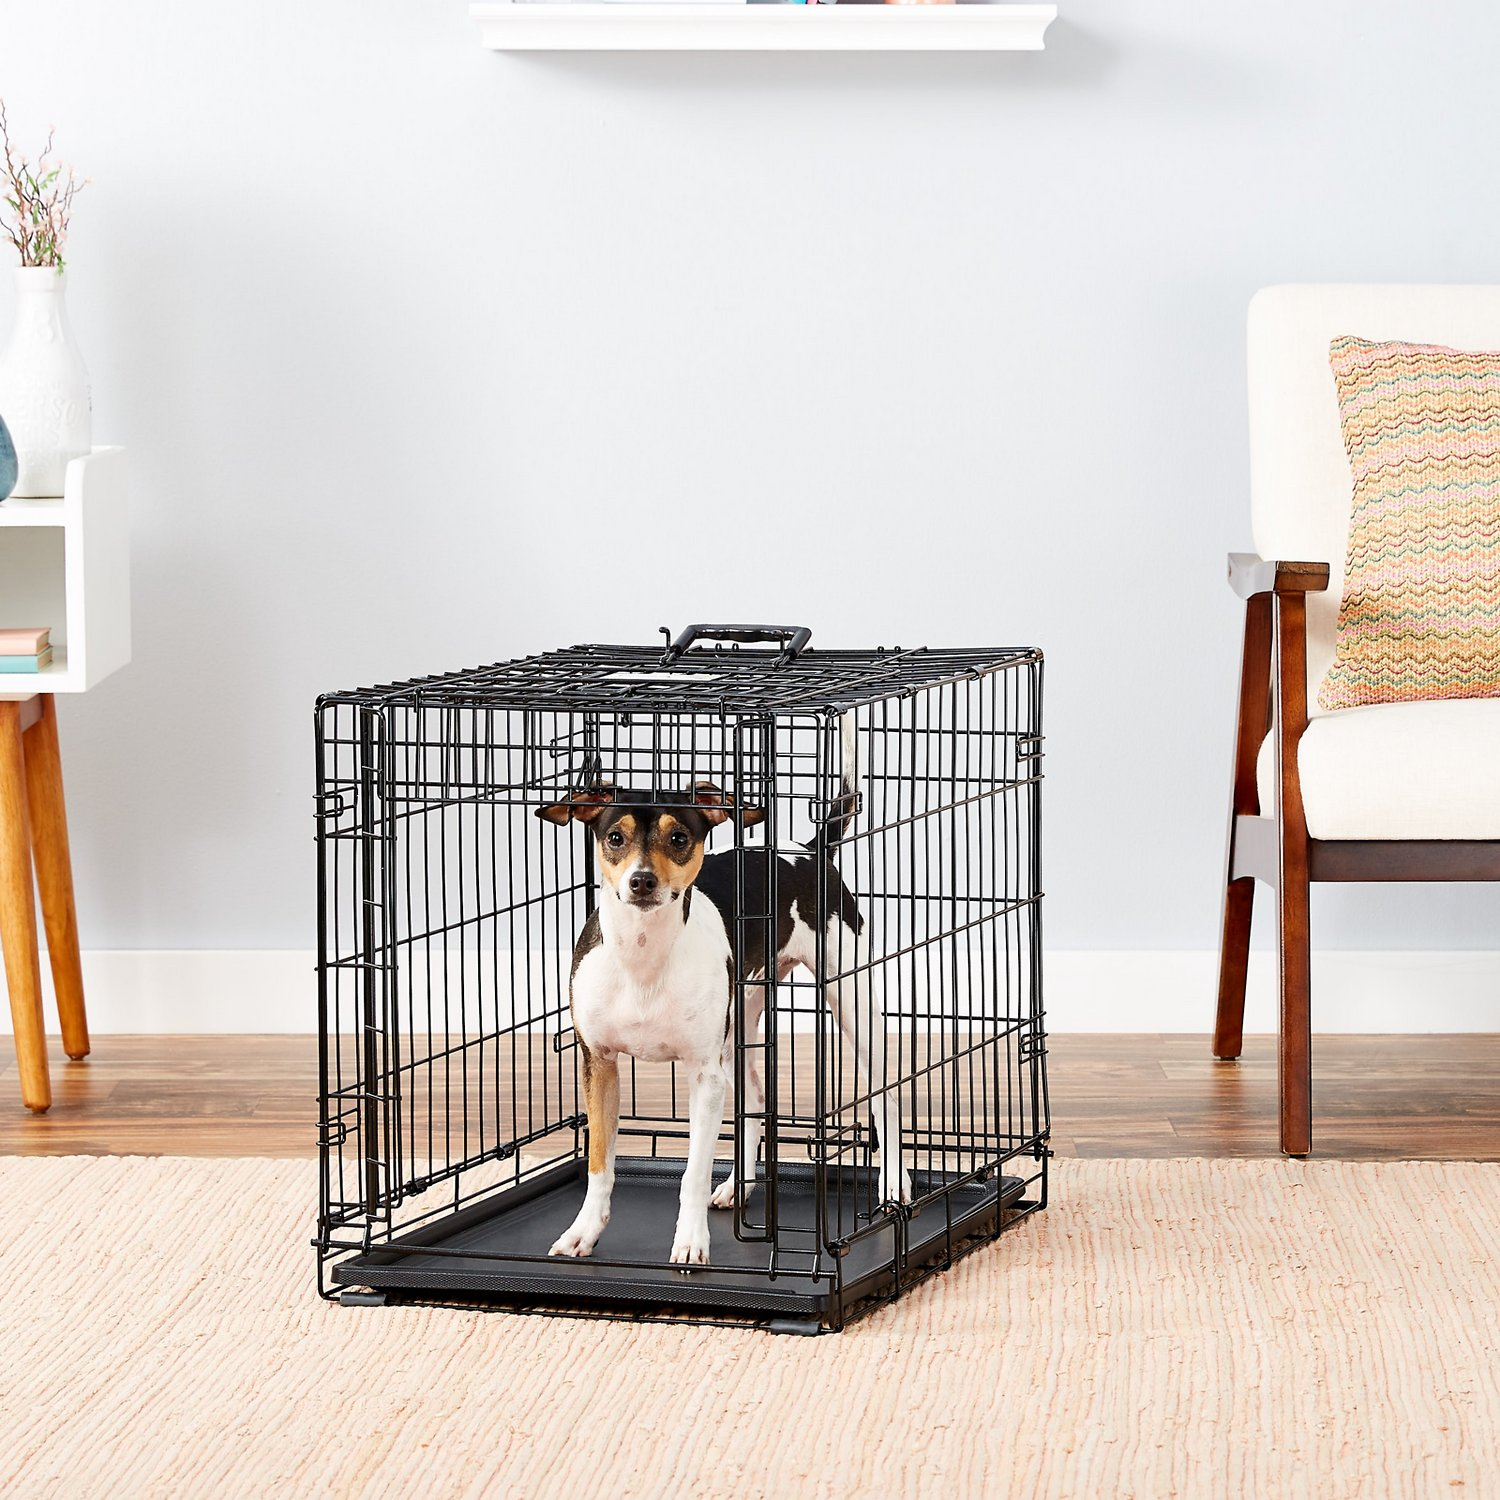 Super Midwest Ovation Single Door Dog Crate 24 In Machost Co Dining Chair Design Ideas Machostcouk